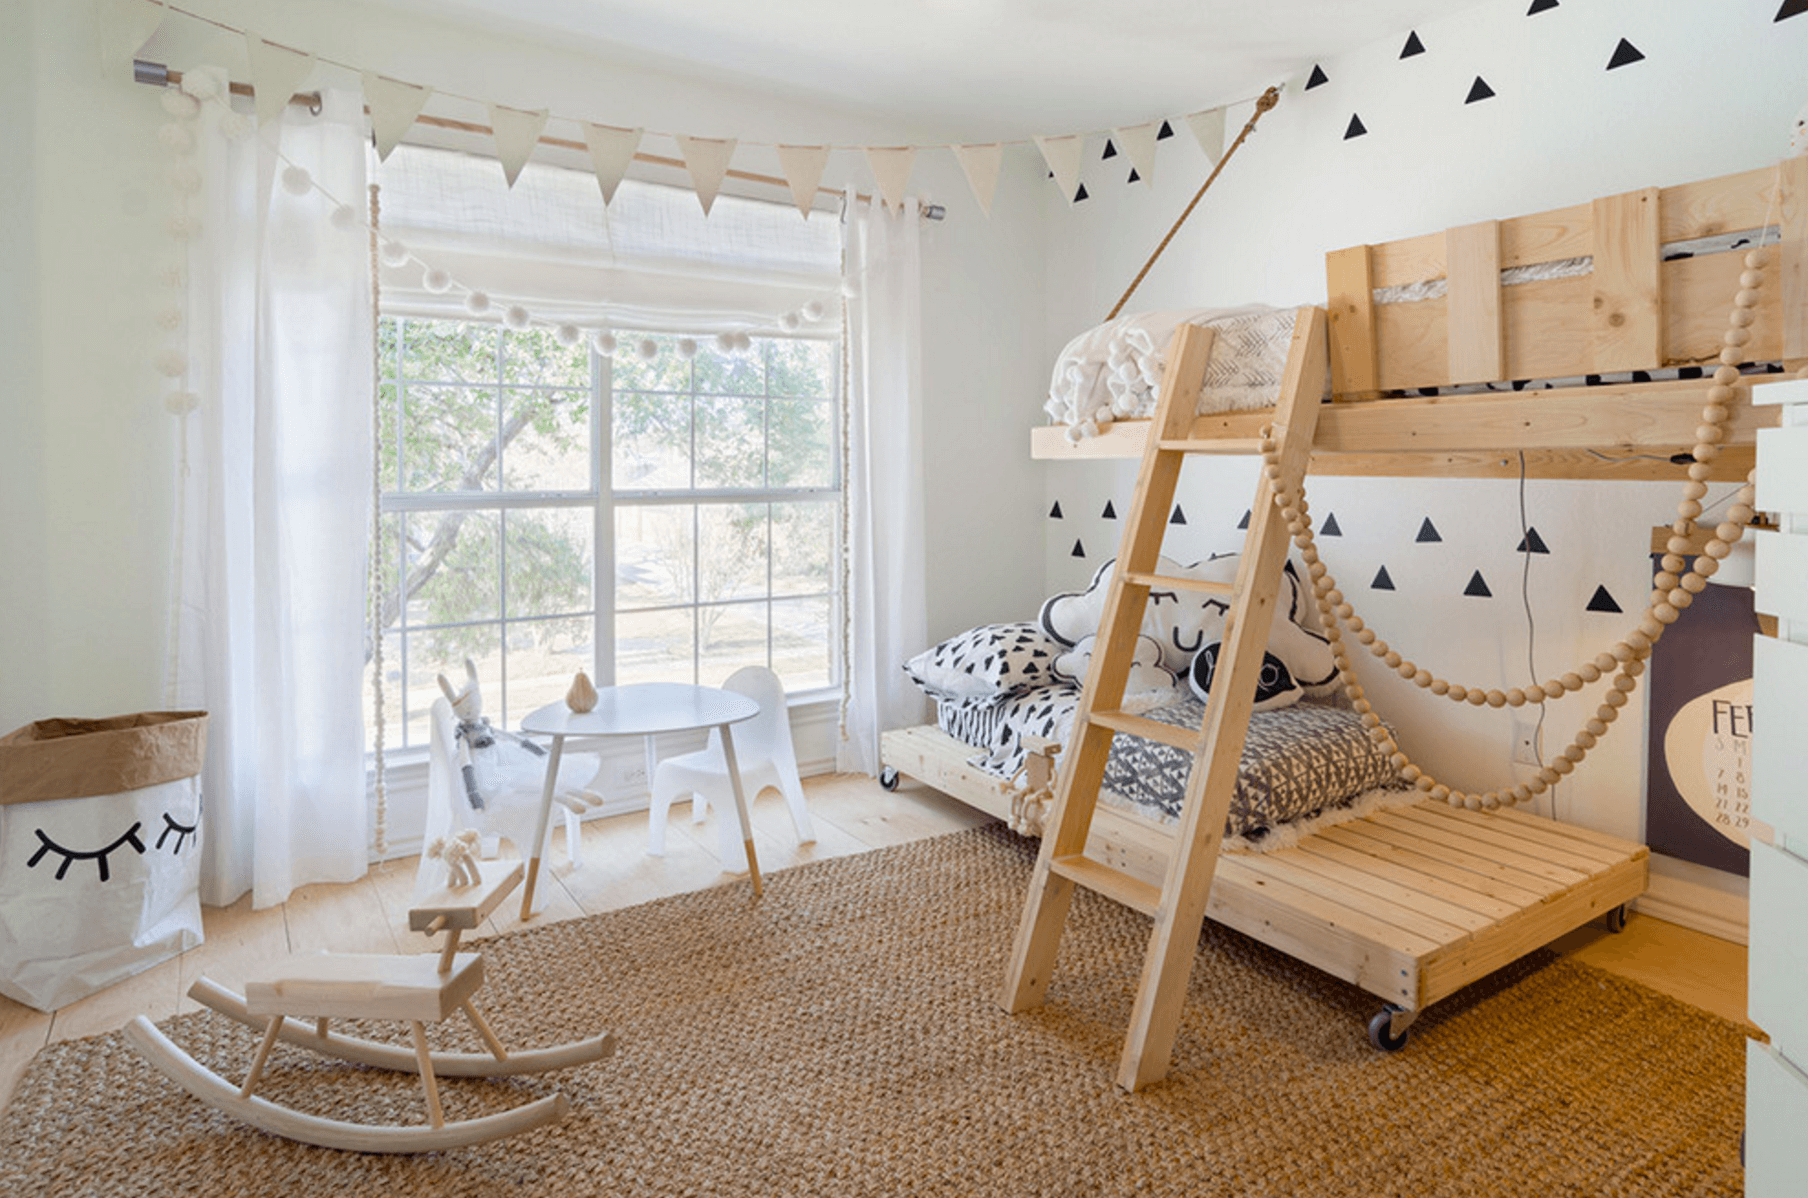 Captivating Kids Room Neutral3. Image: Urbanology Designs